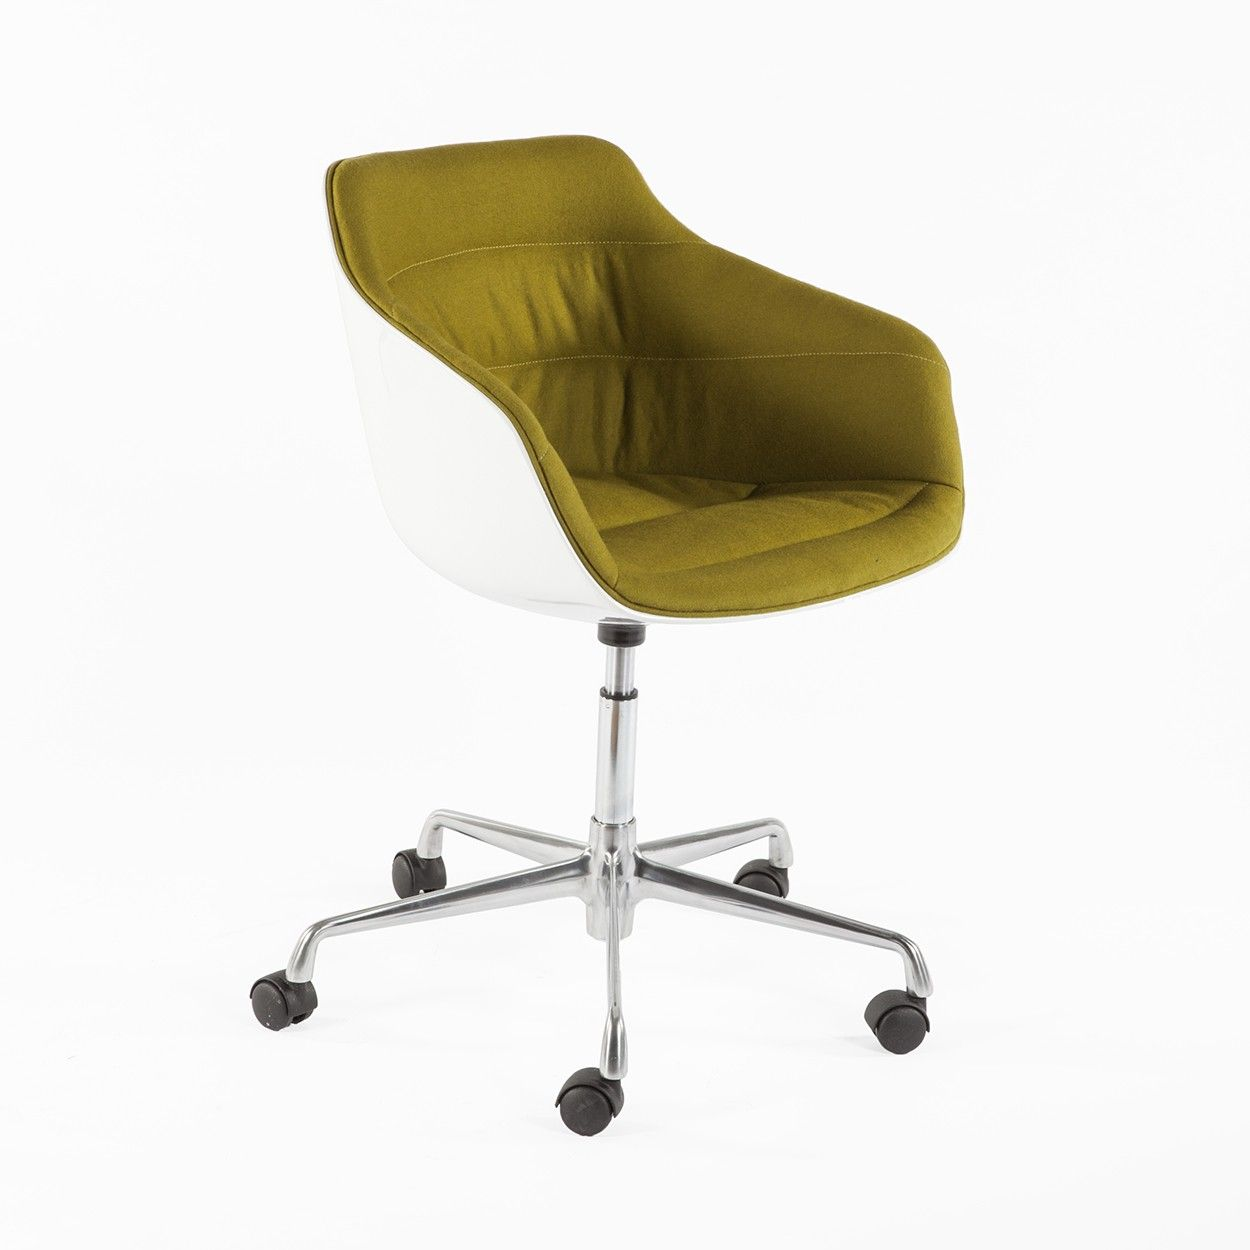 Finness task chair olive wool upholstery chair